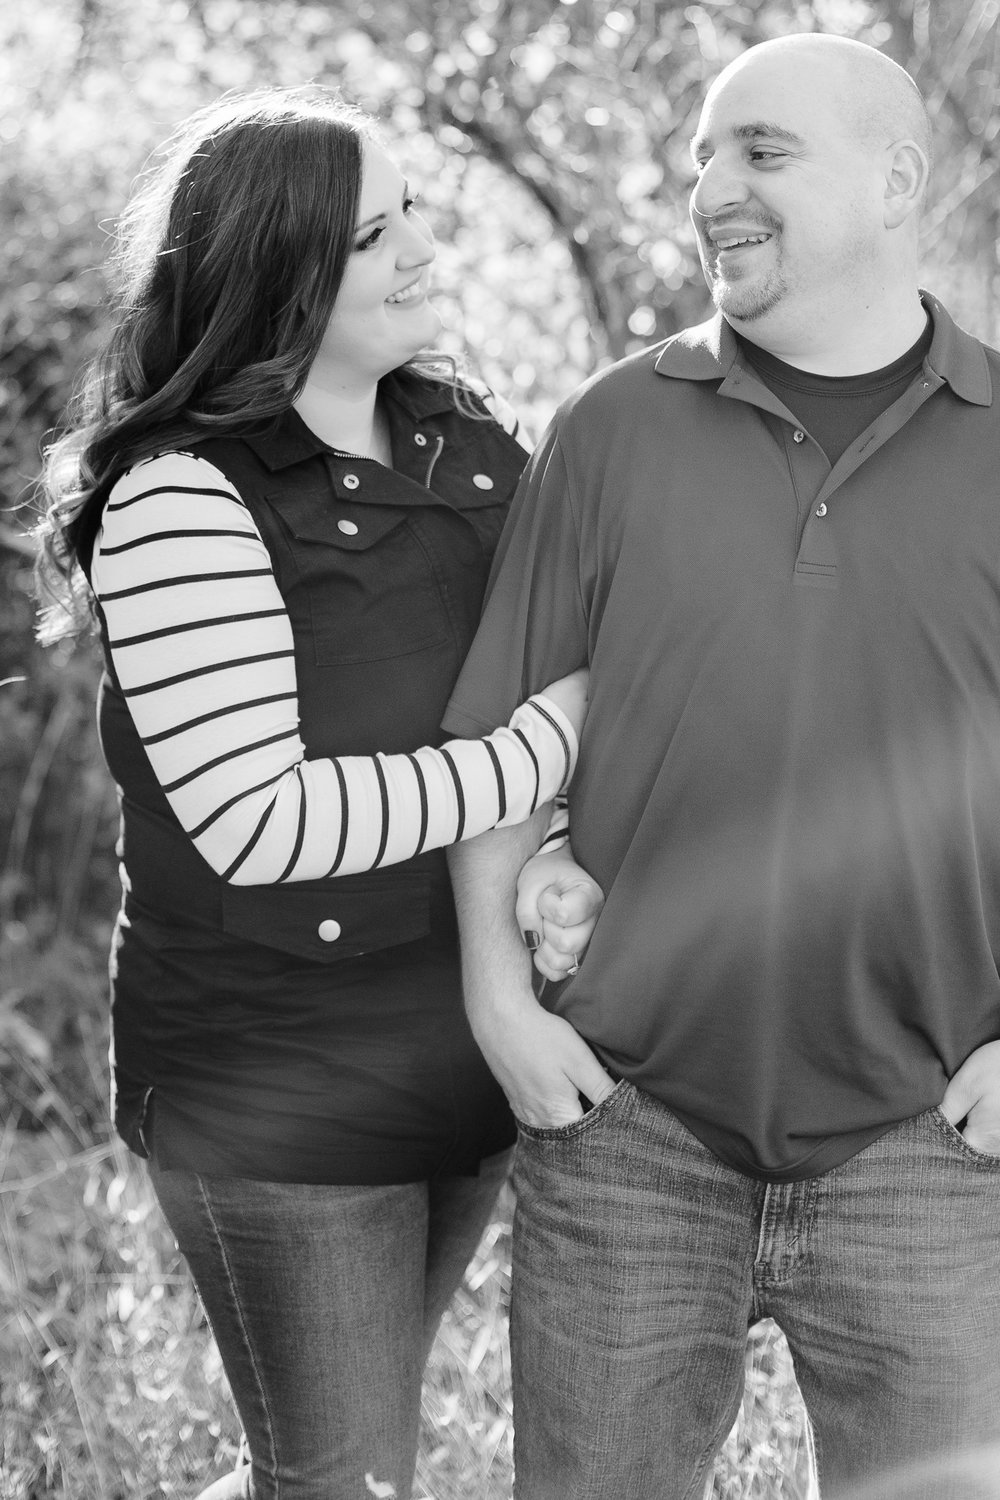 Jacobsburg State Park Nazareth Pennsylvania Woodsy Fall Engagement Session wedding and lifestyle photographer Lytle Photo Co (3 of 64).jpg